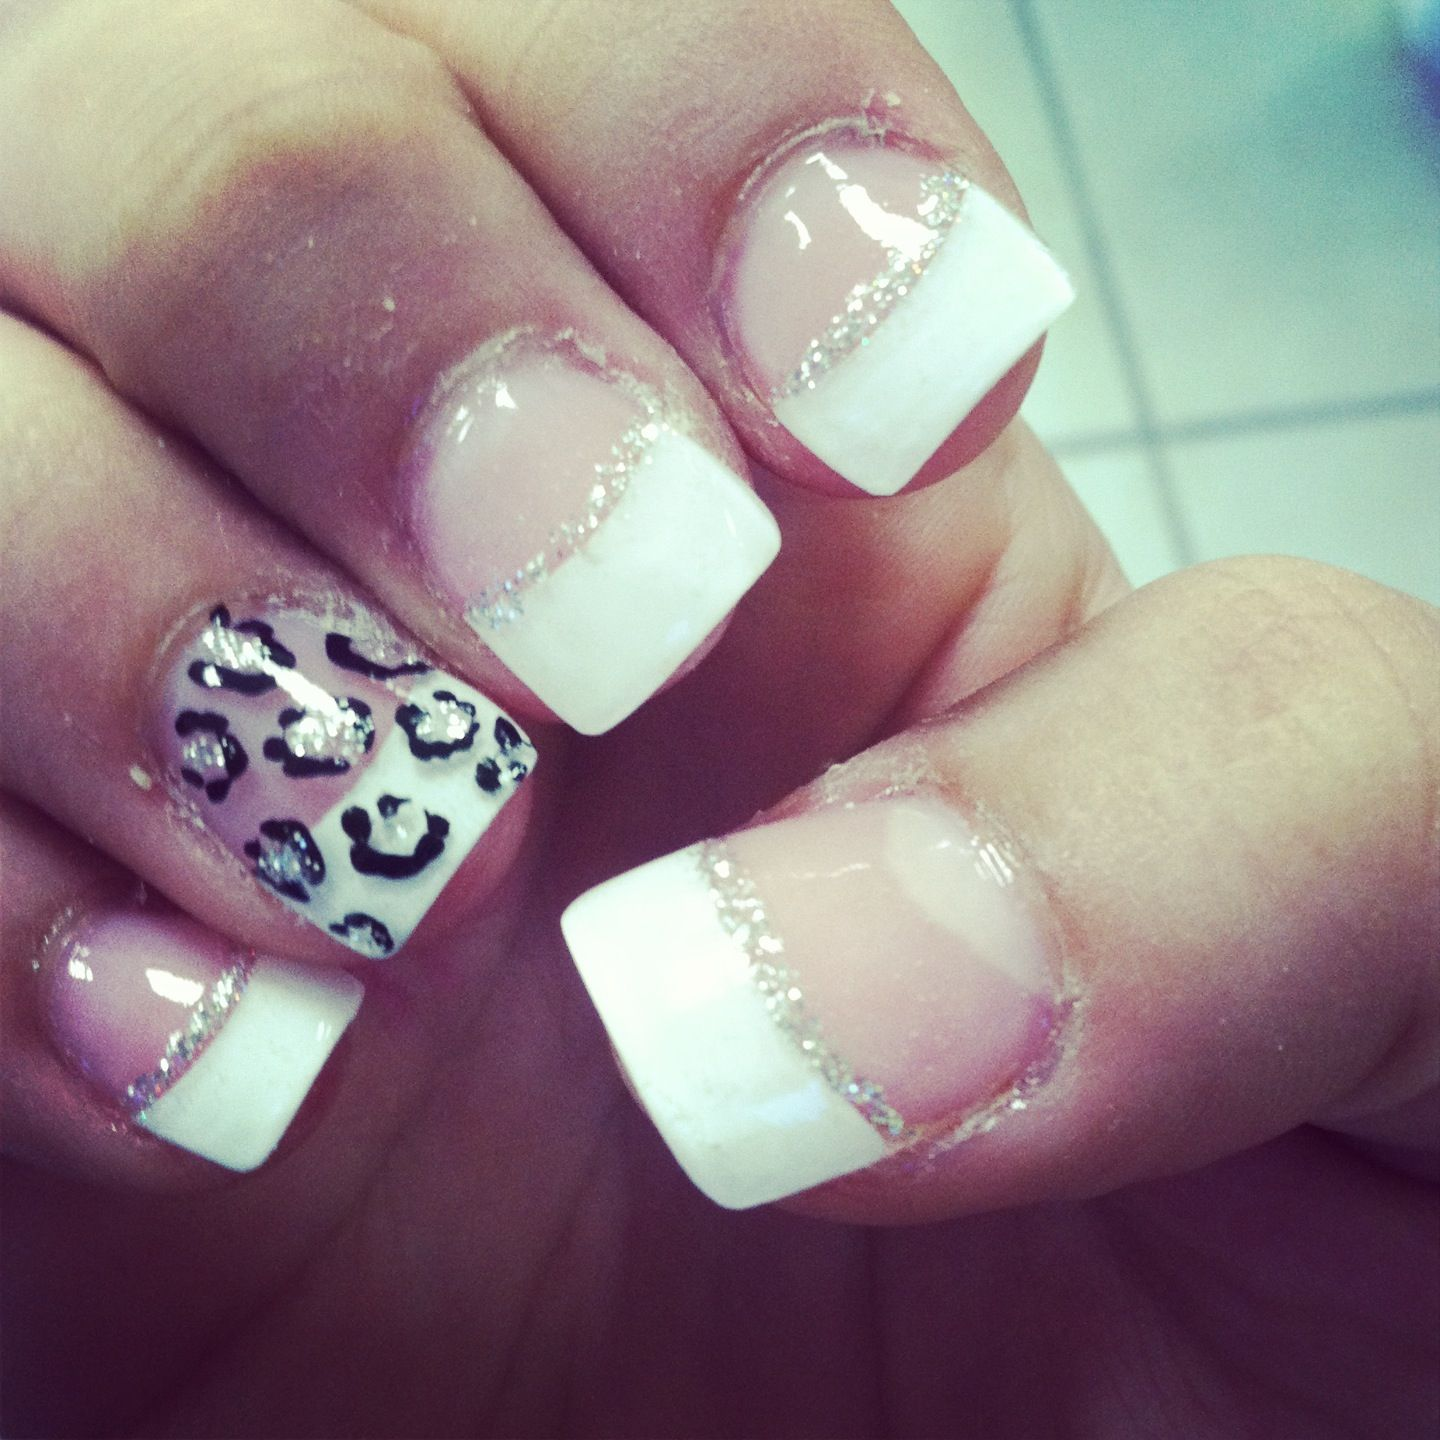 Blue Prom Nails French Tip: Prom Nails Cheetah French Tips